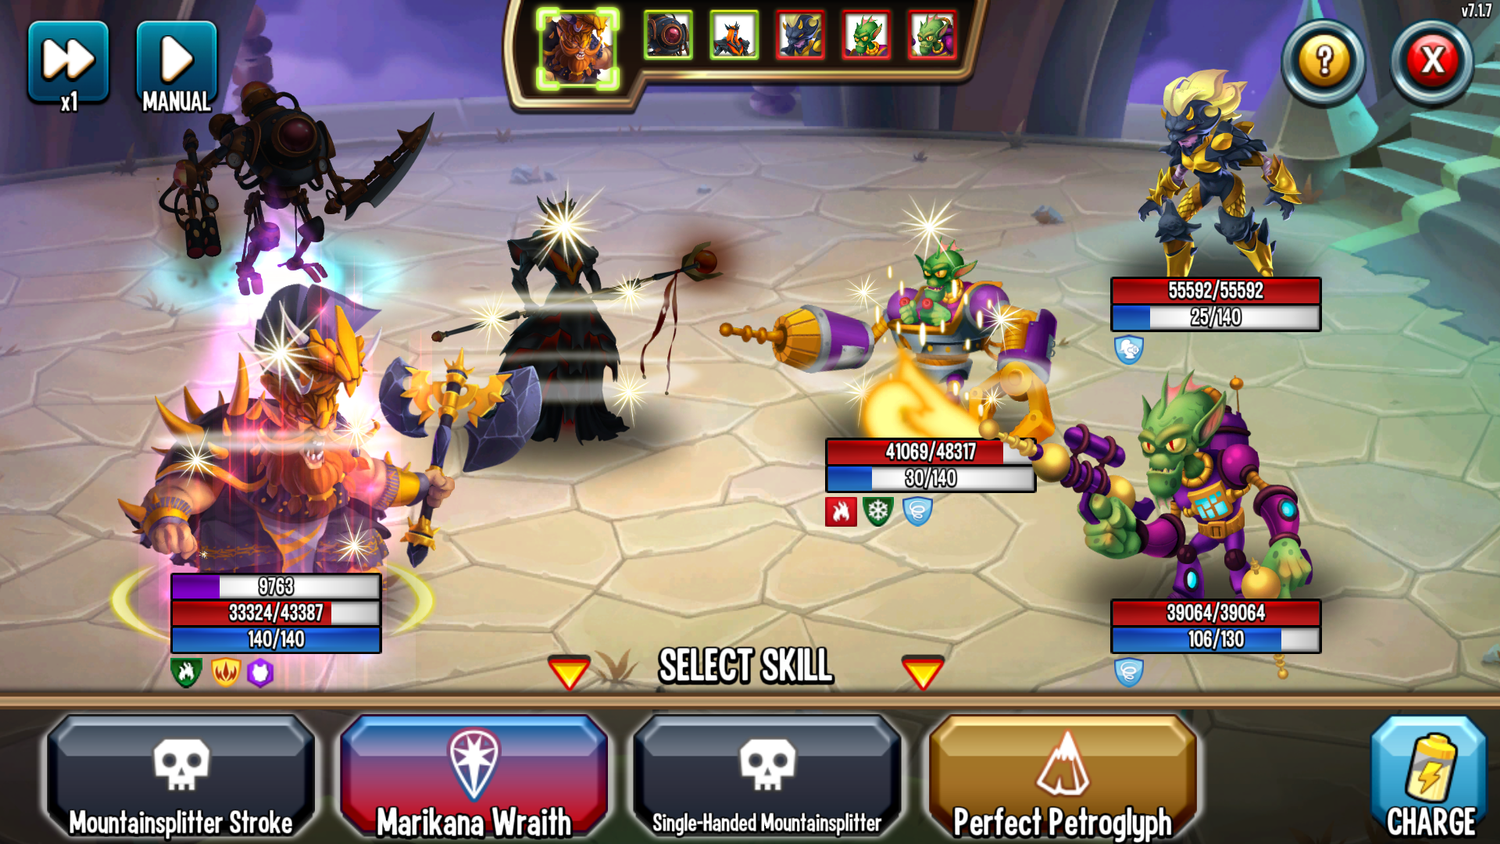 0_1539786025740_Screenshot_2018-10-17-19-46-47-145_es.socialpoint.MonsterLegends.png